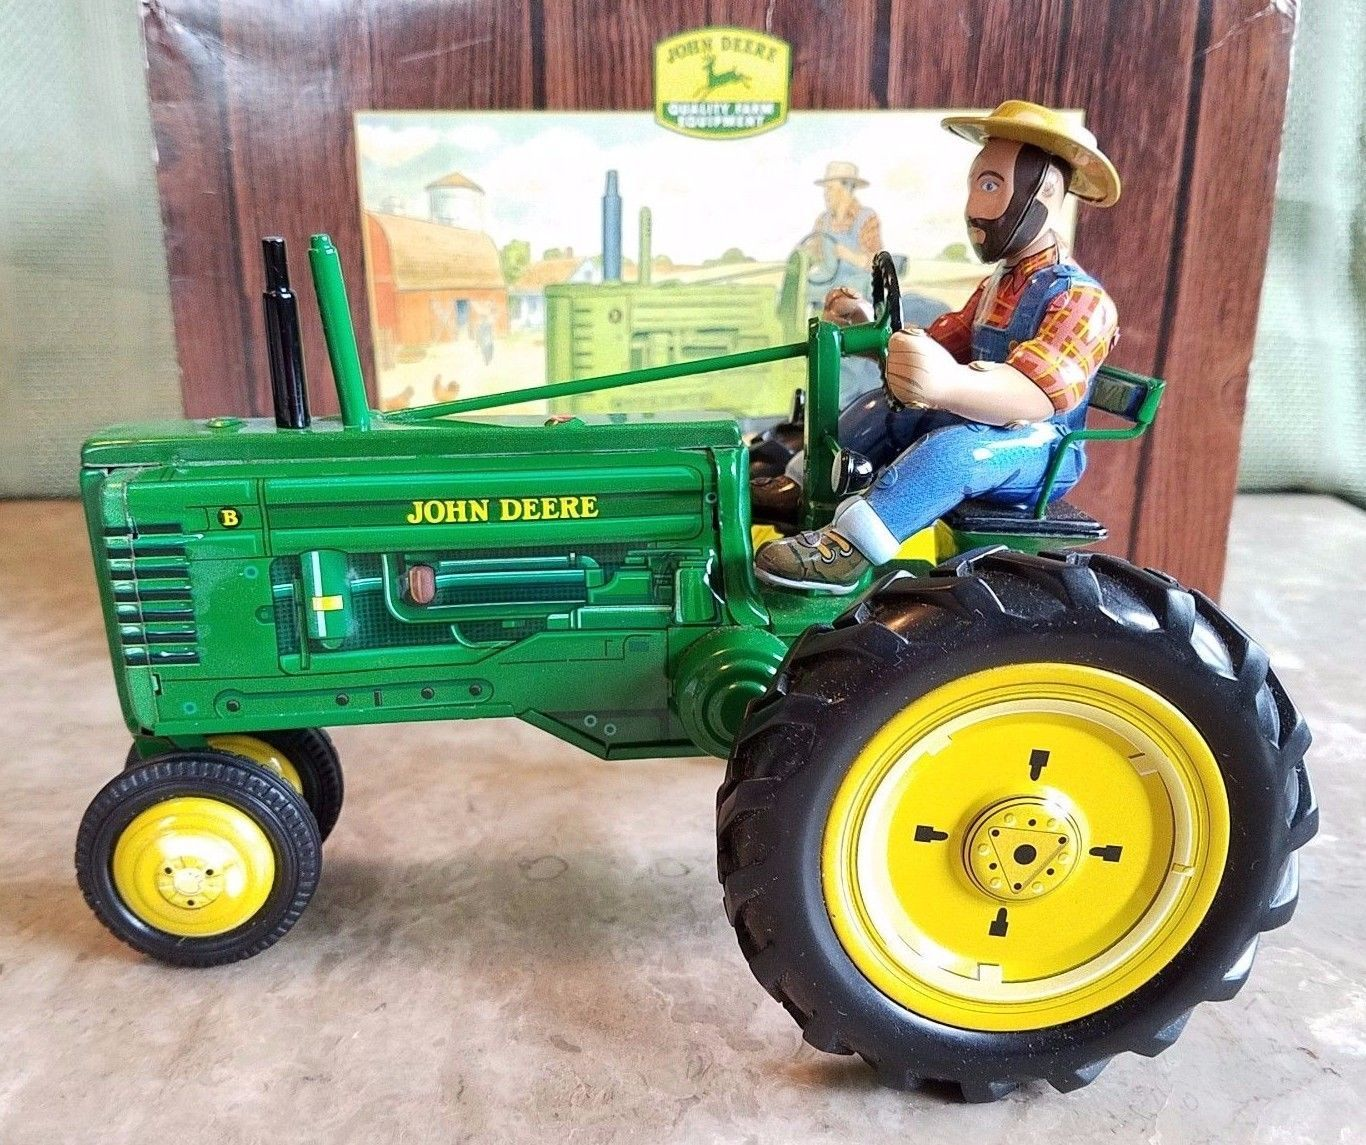 B toys car wheel  John Deere Model B Tractor Toy by Franklin Mint With Key  Buying